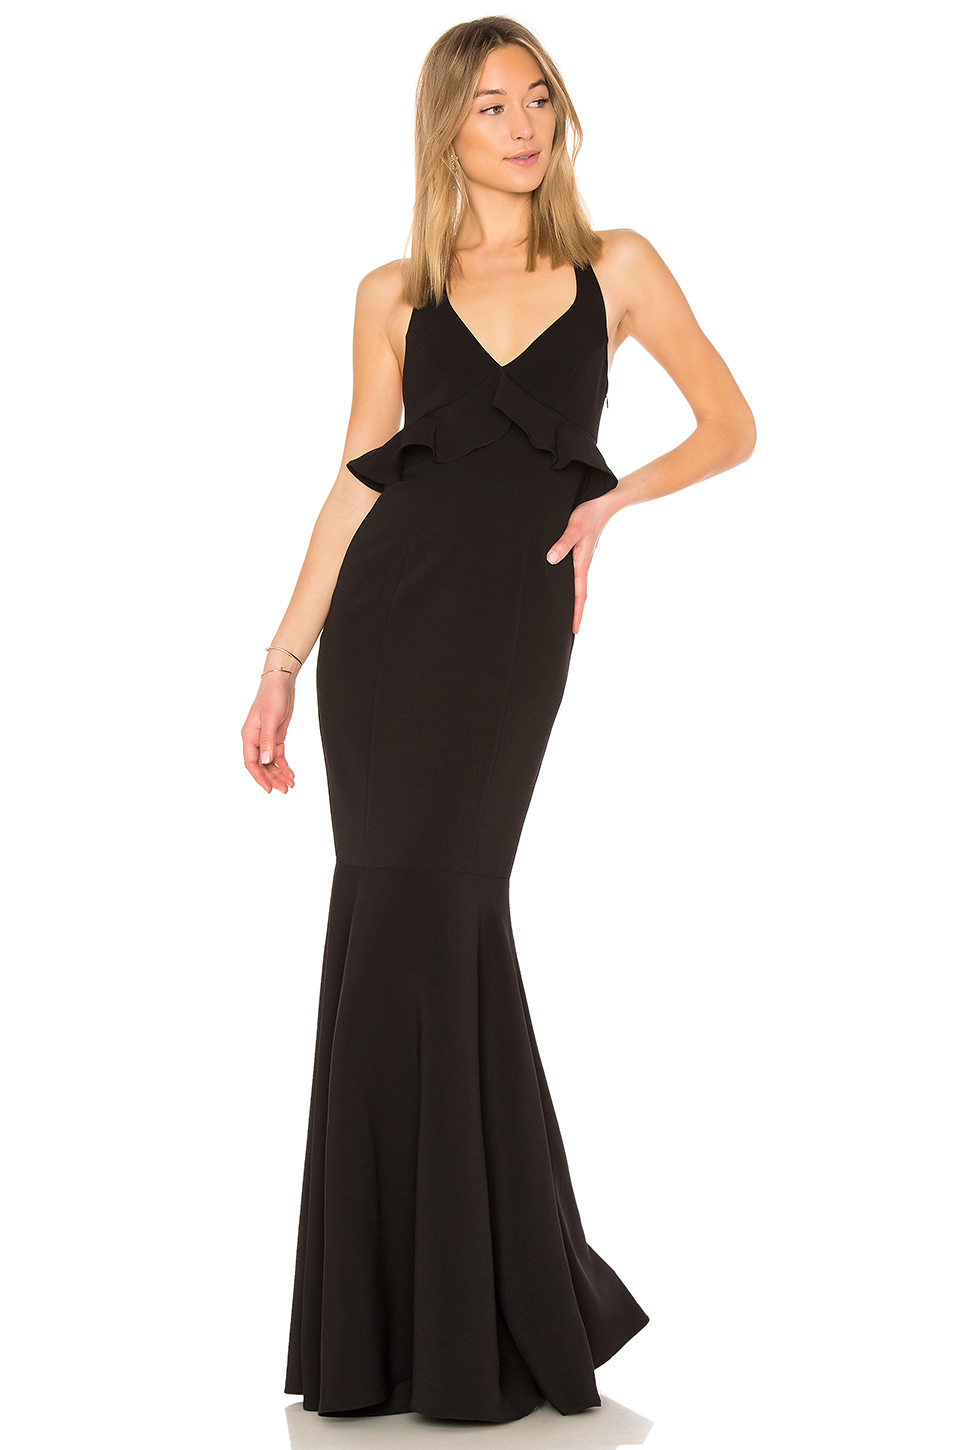 Buy Original LIKELY Eden Gown at Indonesia  3f2ca10e223e